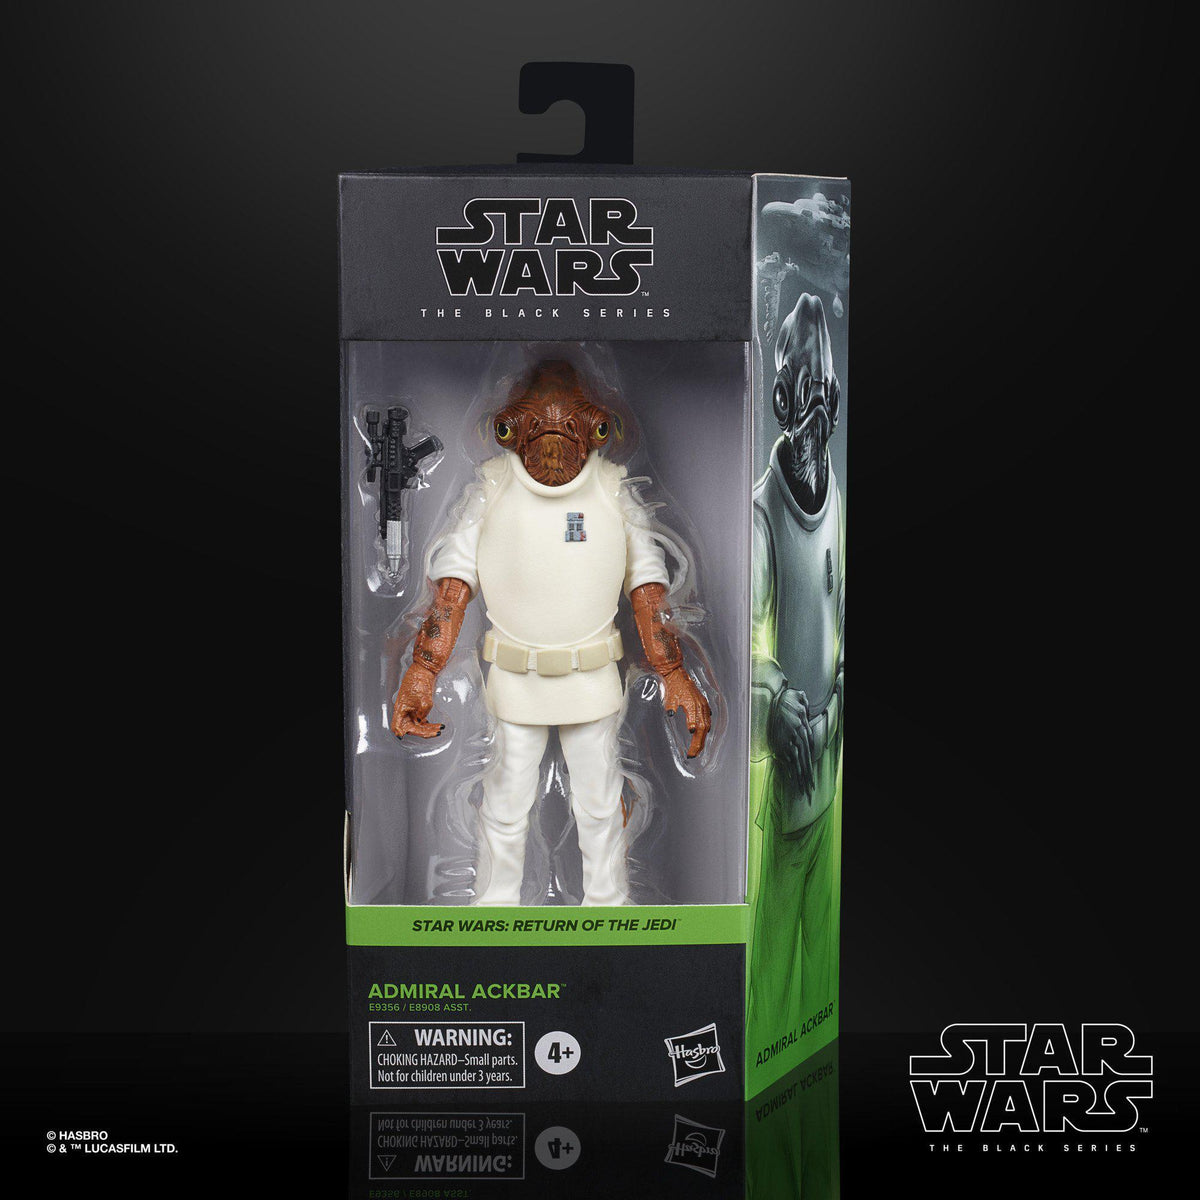 STAR WARS: THE BLACK SERIES - ADMIRAL ACKBAR 6-INCH ACTION FIGURE